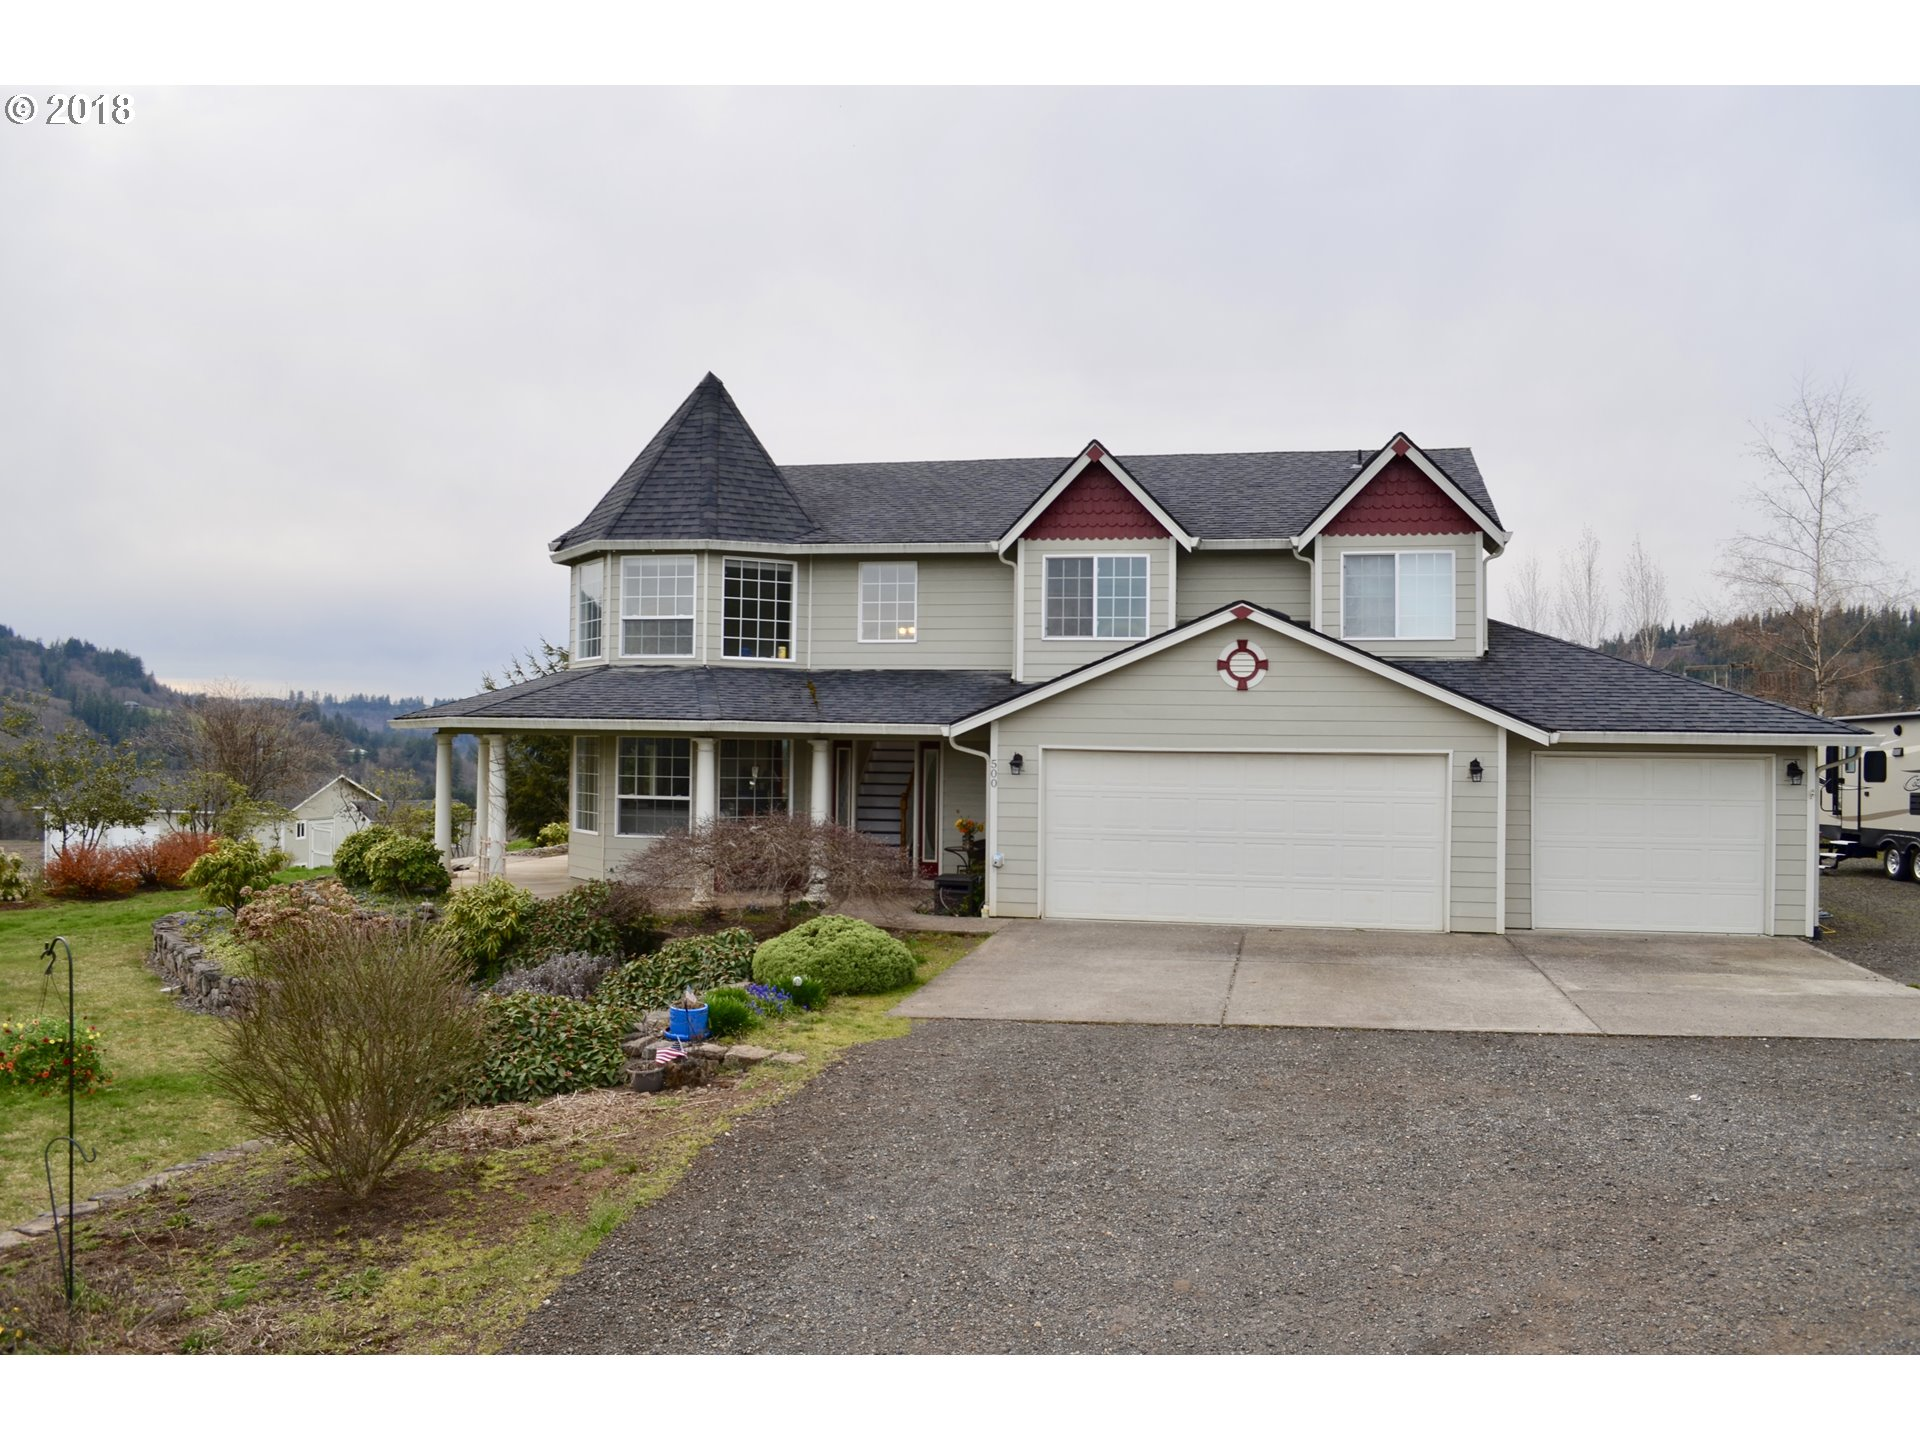 500 NE 404th Ct, Washougal, WA 98671